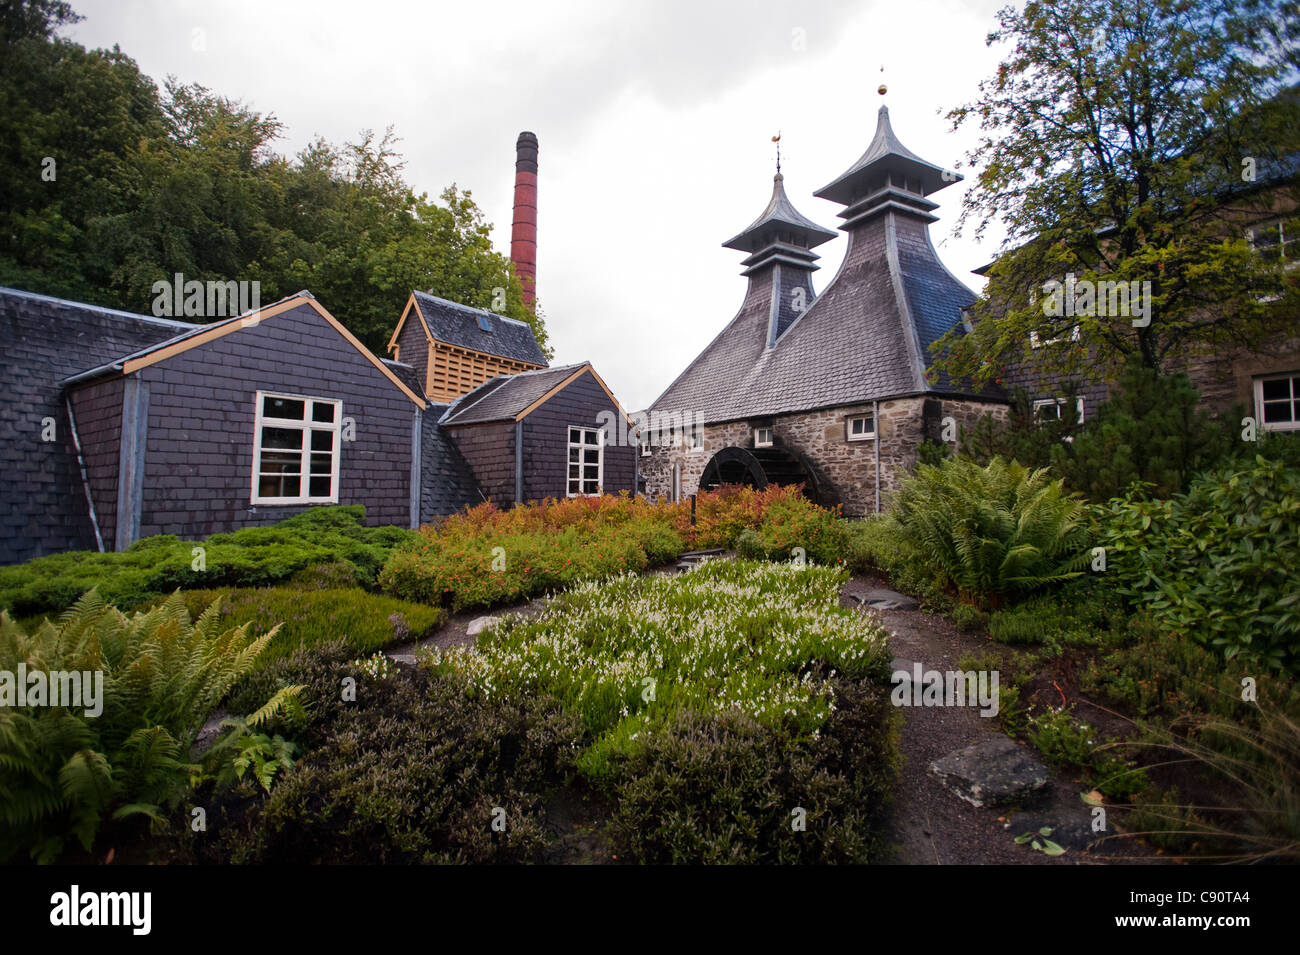 Strathisla Distillery in Keith, the oldest continuously operating distillery in Scotland, Aberdeenshire, Scotland - Stock Image